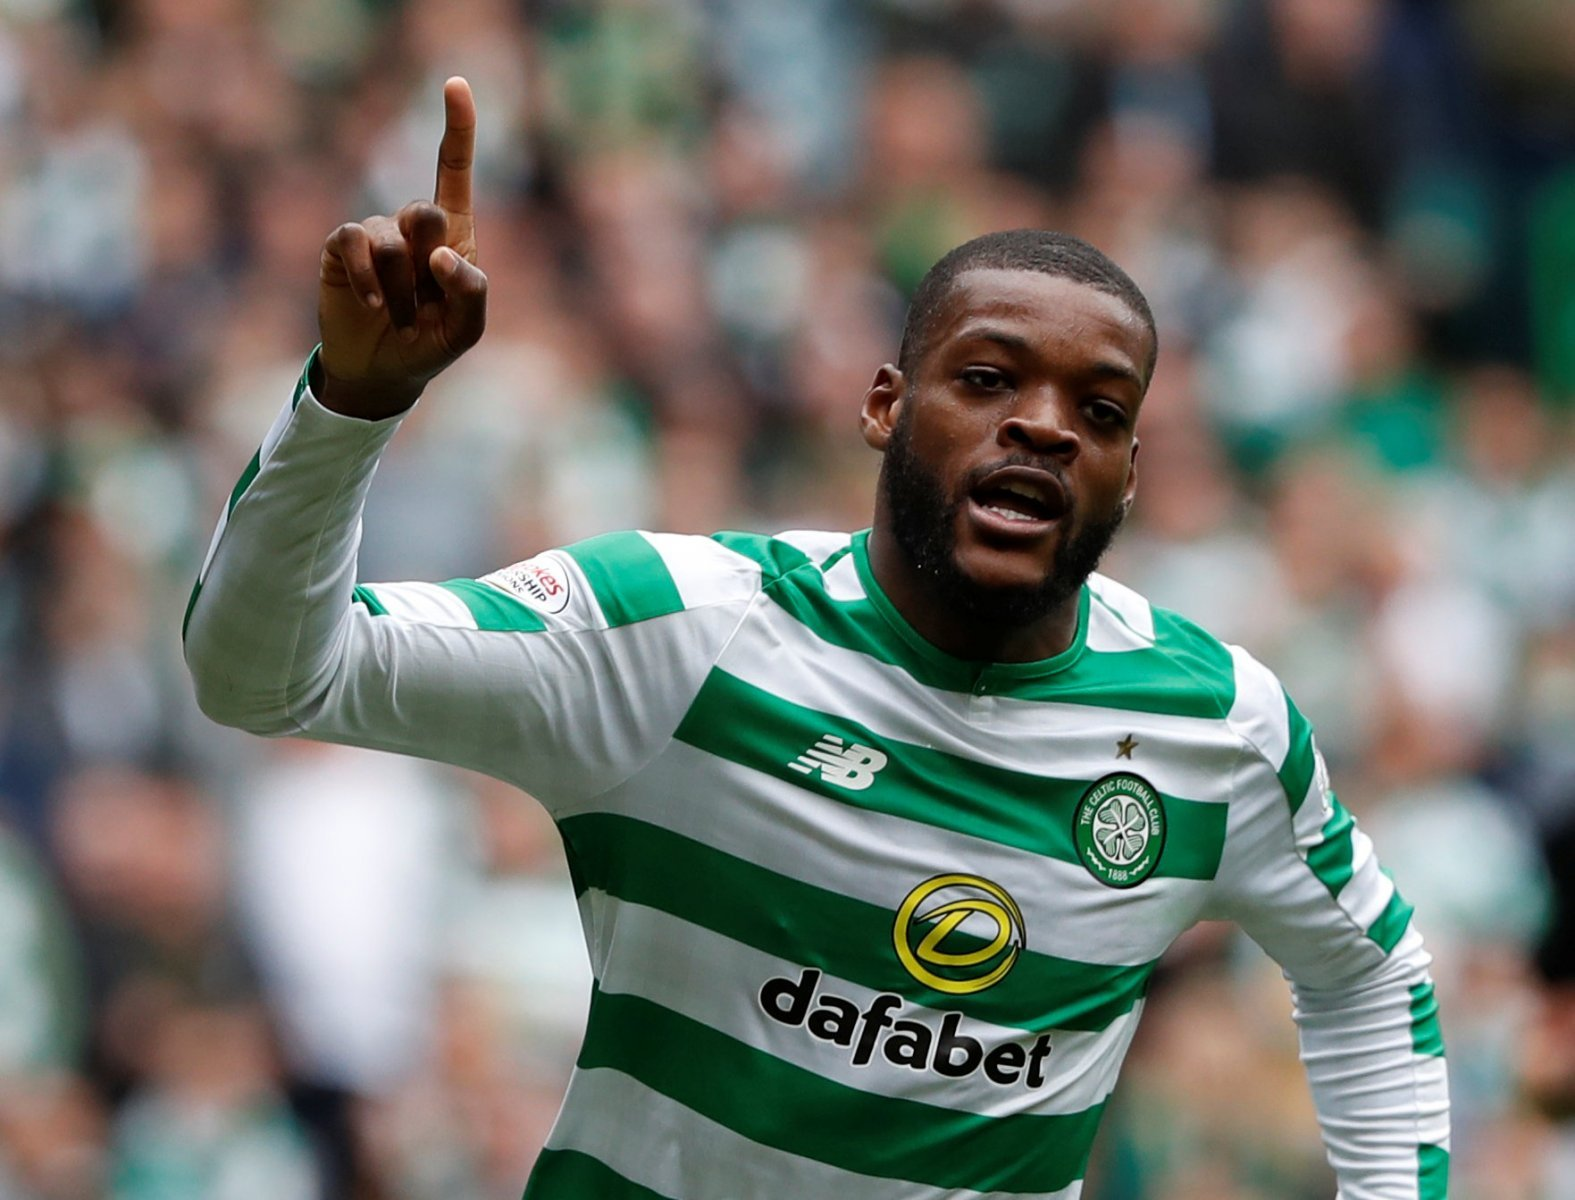 Ntcham can seriously improve Southampton in January